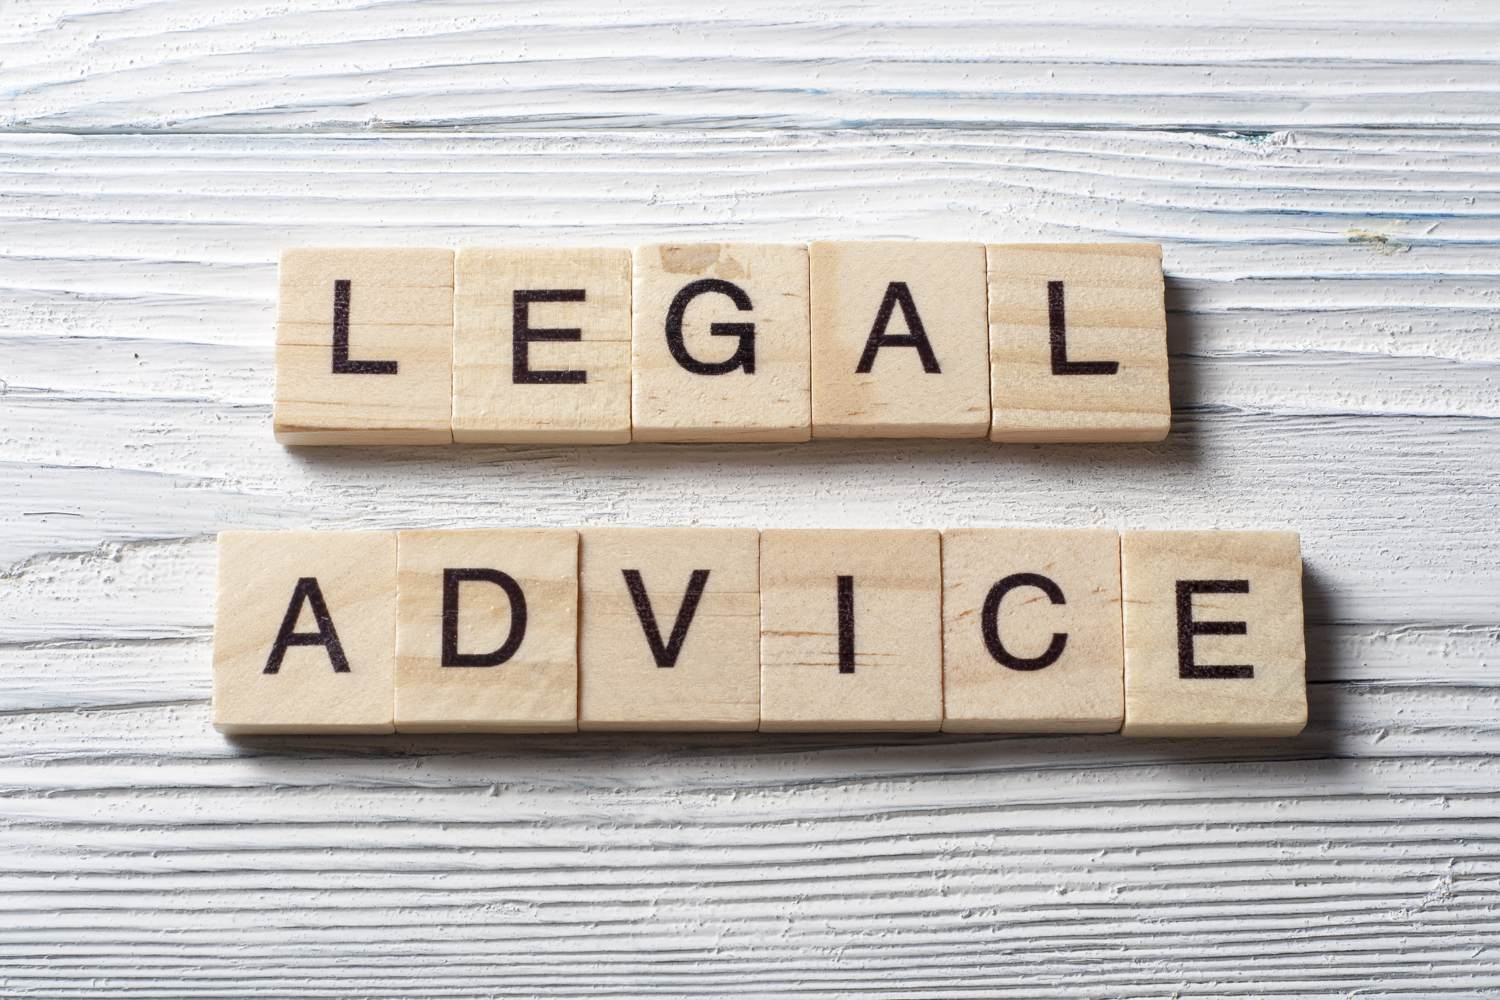 Legal advice landlord